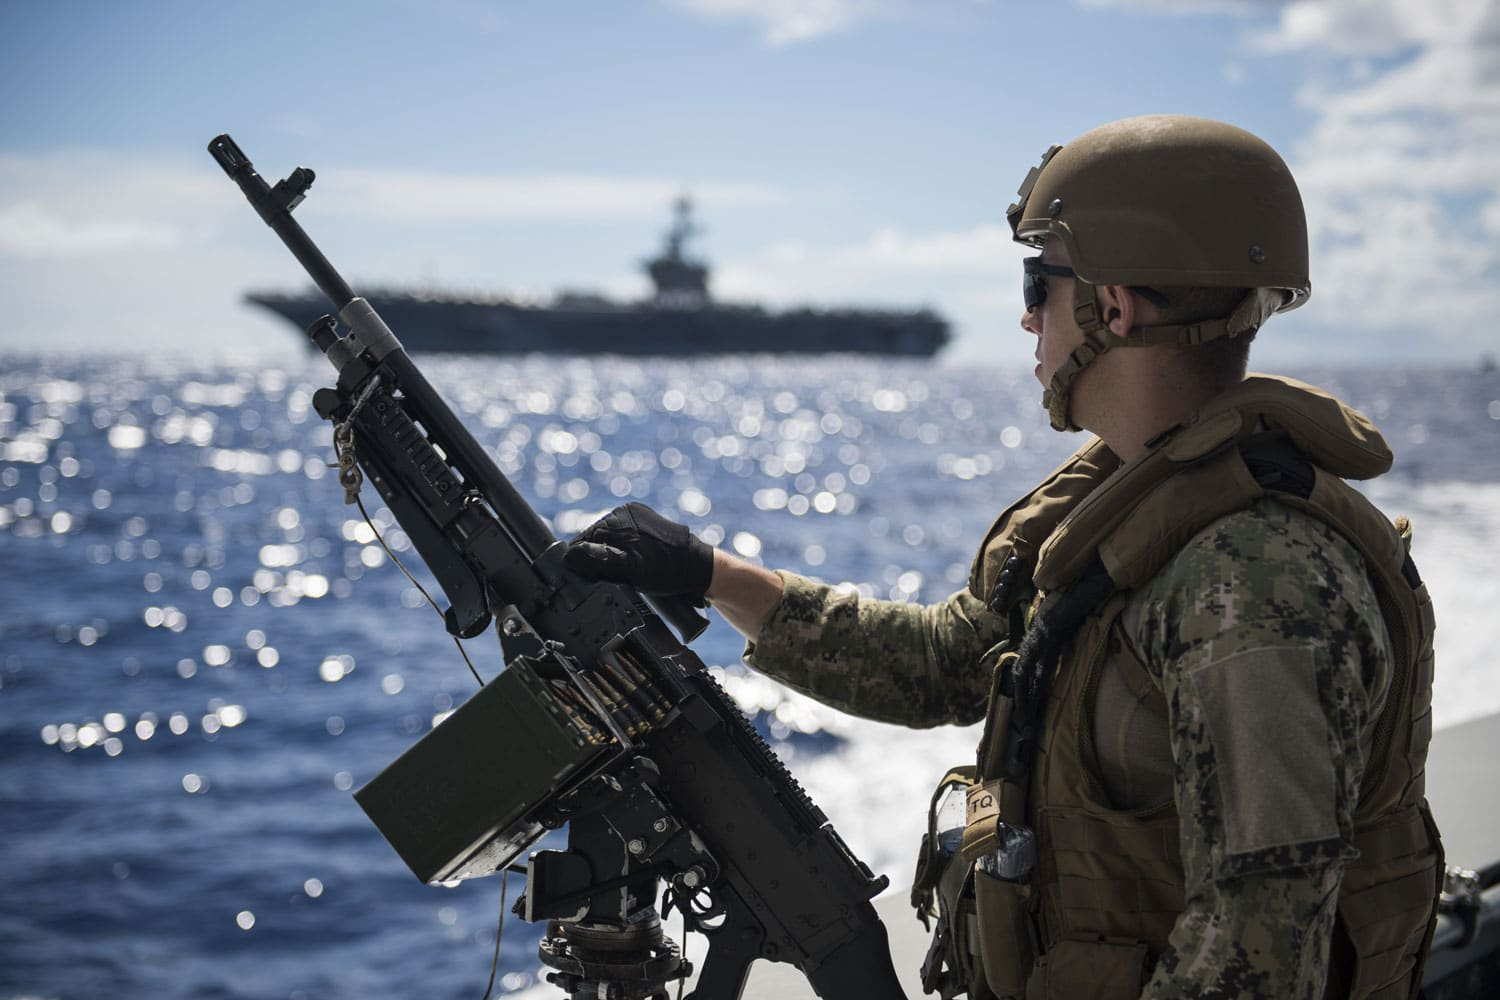 CRS 2 Escorts USS Roosevelt to Apra Harbor U.S. Navy Operations Specialist 2nd Class Jacob Owen, assigned to Coastal Riverine Squadron (CRS) 2, mans an M240G machine gun aboard a MK VI patrol boat while providing high value asset protection for the aircraft carrier USS Theodore Roosevelt as it transits (CVN 71) to Apra Harbor, Guam.